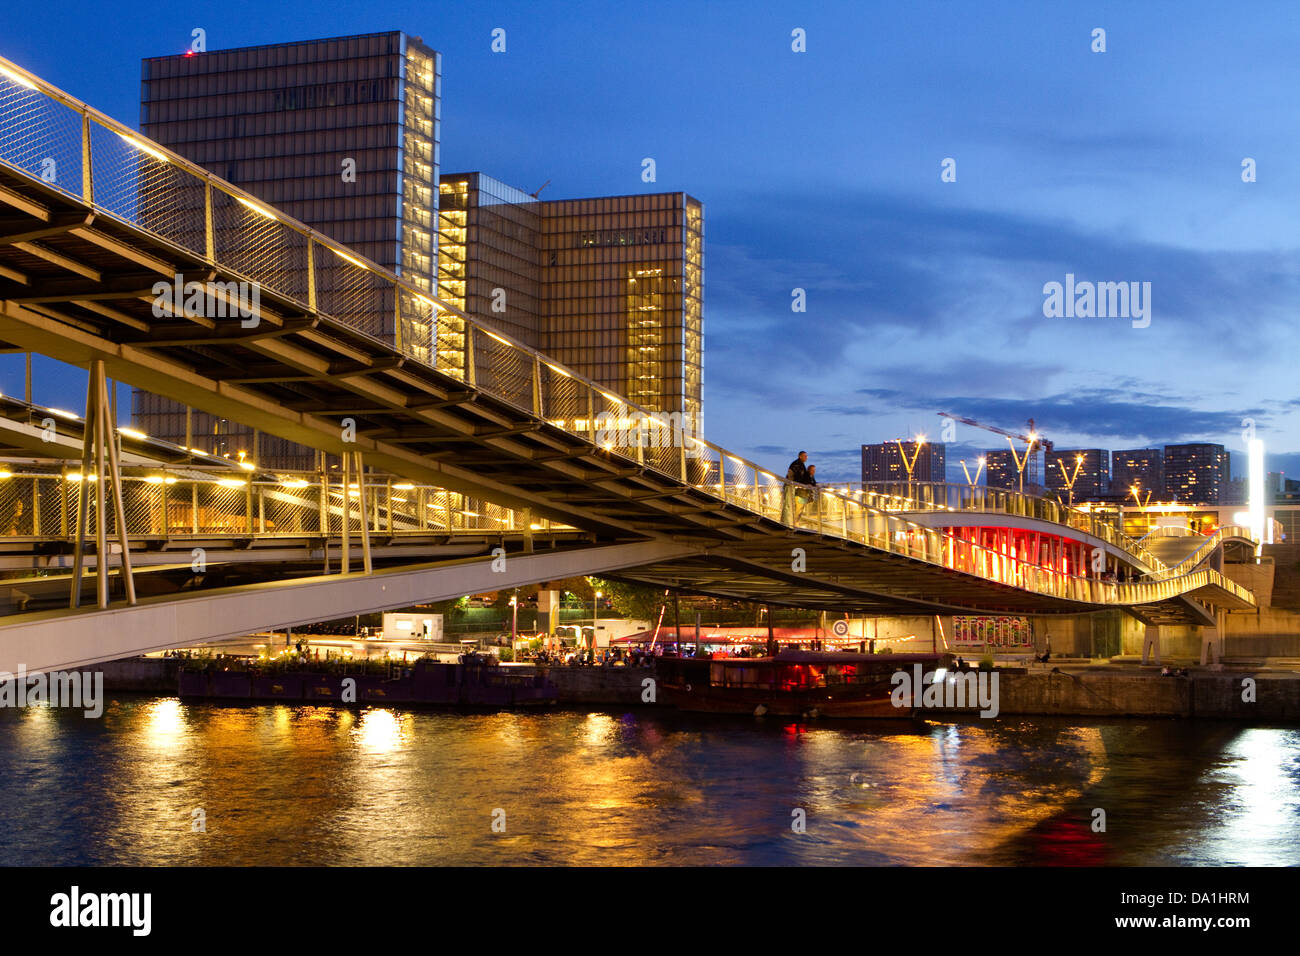 The Passerelle Simone-de-Beauvoir along the Seine river, built in 2006  and linking to 12th and 13th arrondissements - Stock Image